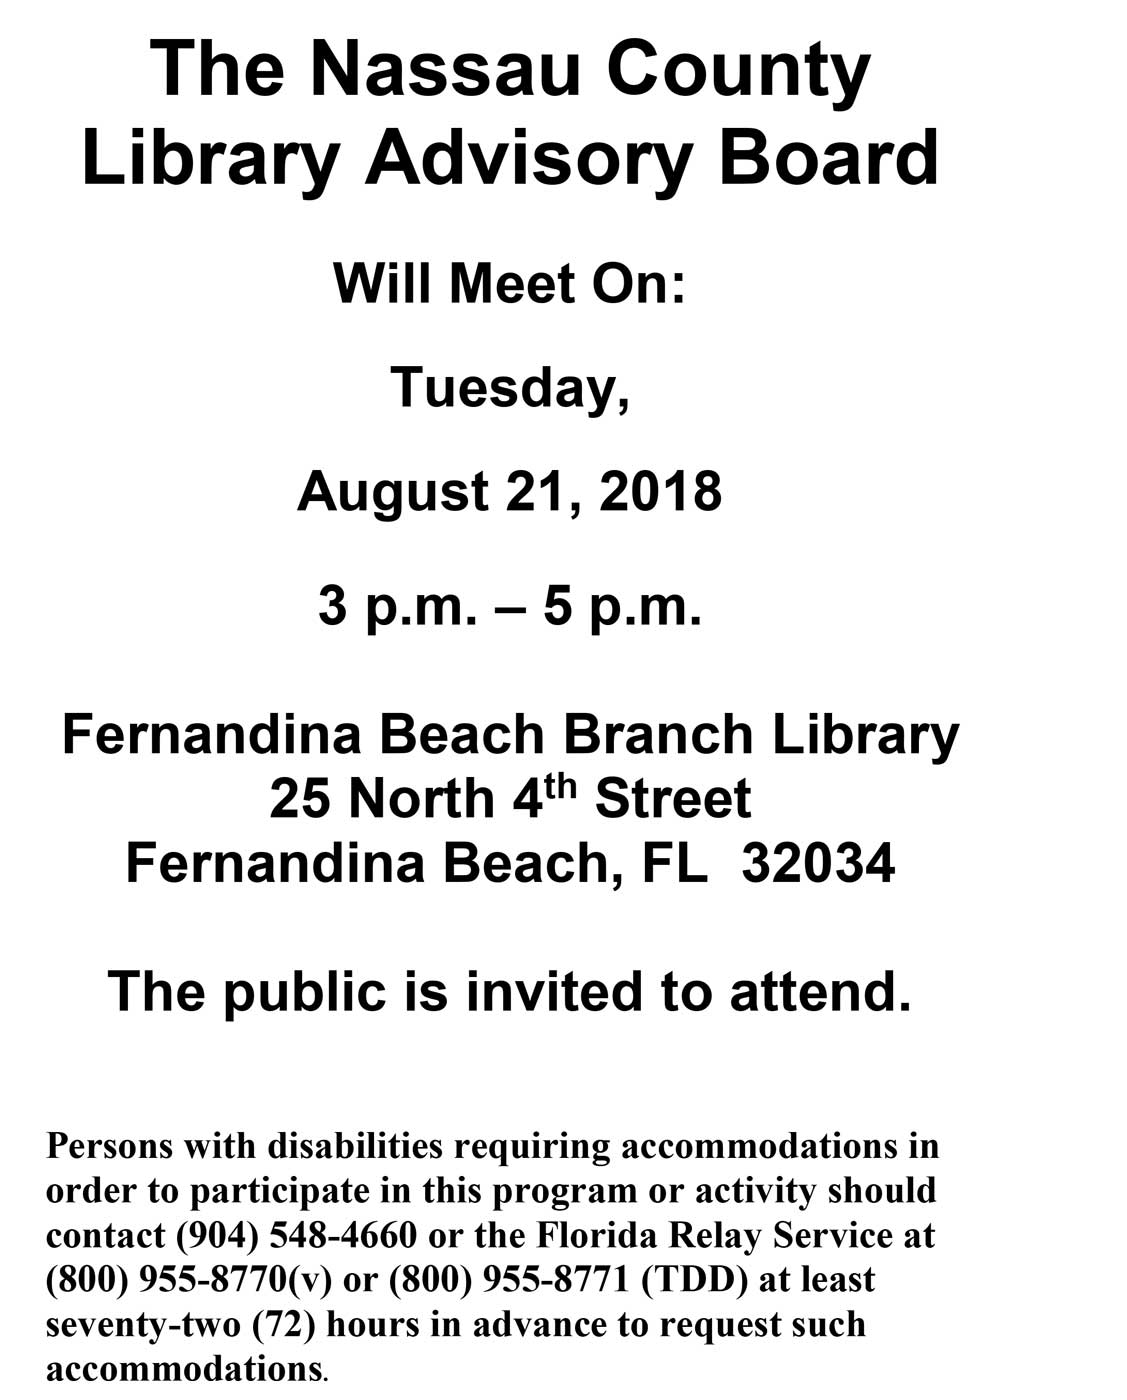 The Nassau County Library Advisory Board The Nassau County Library Advisory Board Will Meet On: Tuesday, August 21, 2018 3 p.m. – 5 p.m.